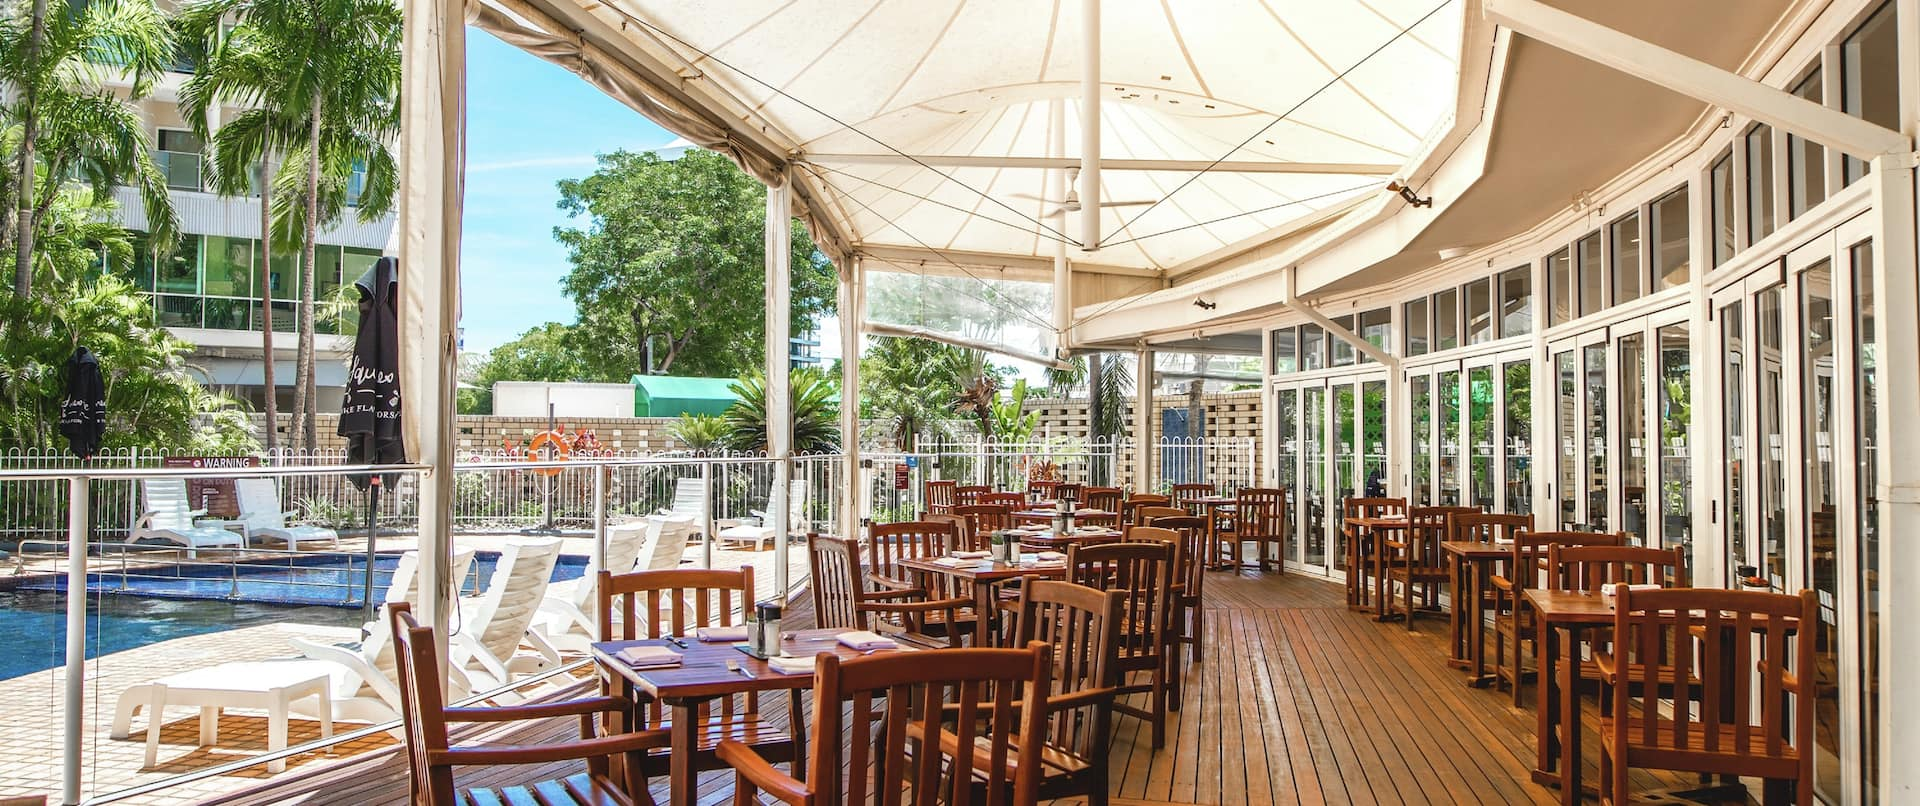 Overlooking the sparkling waters of the outdoor pool and surrounded by lush tropical gardens, the Poolside Restaurant serves innovative Australian cuisine in a relaxed environment.